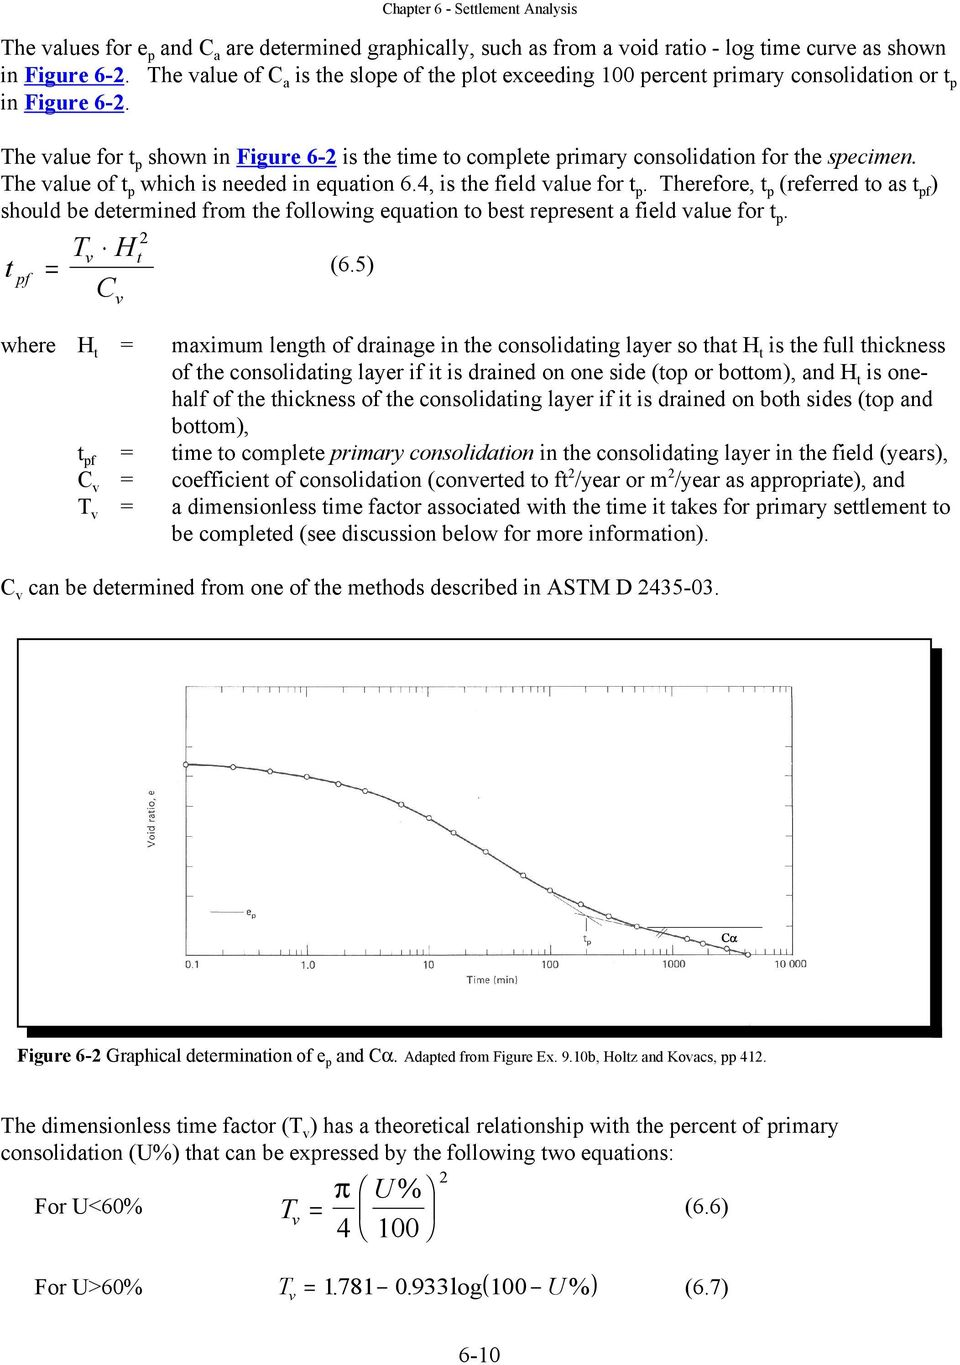 holtz and kovacs solution manual pdf